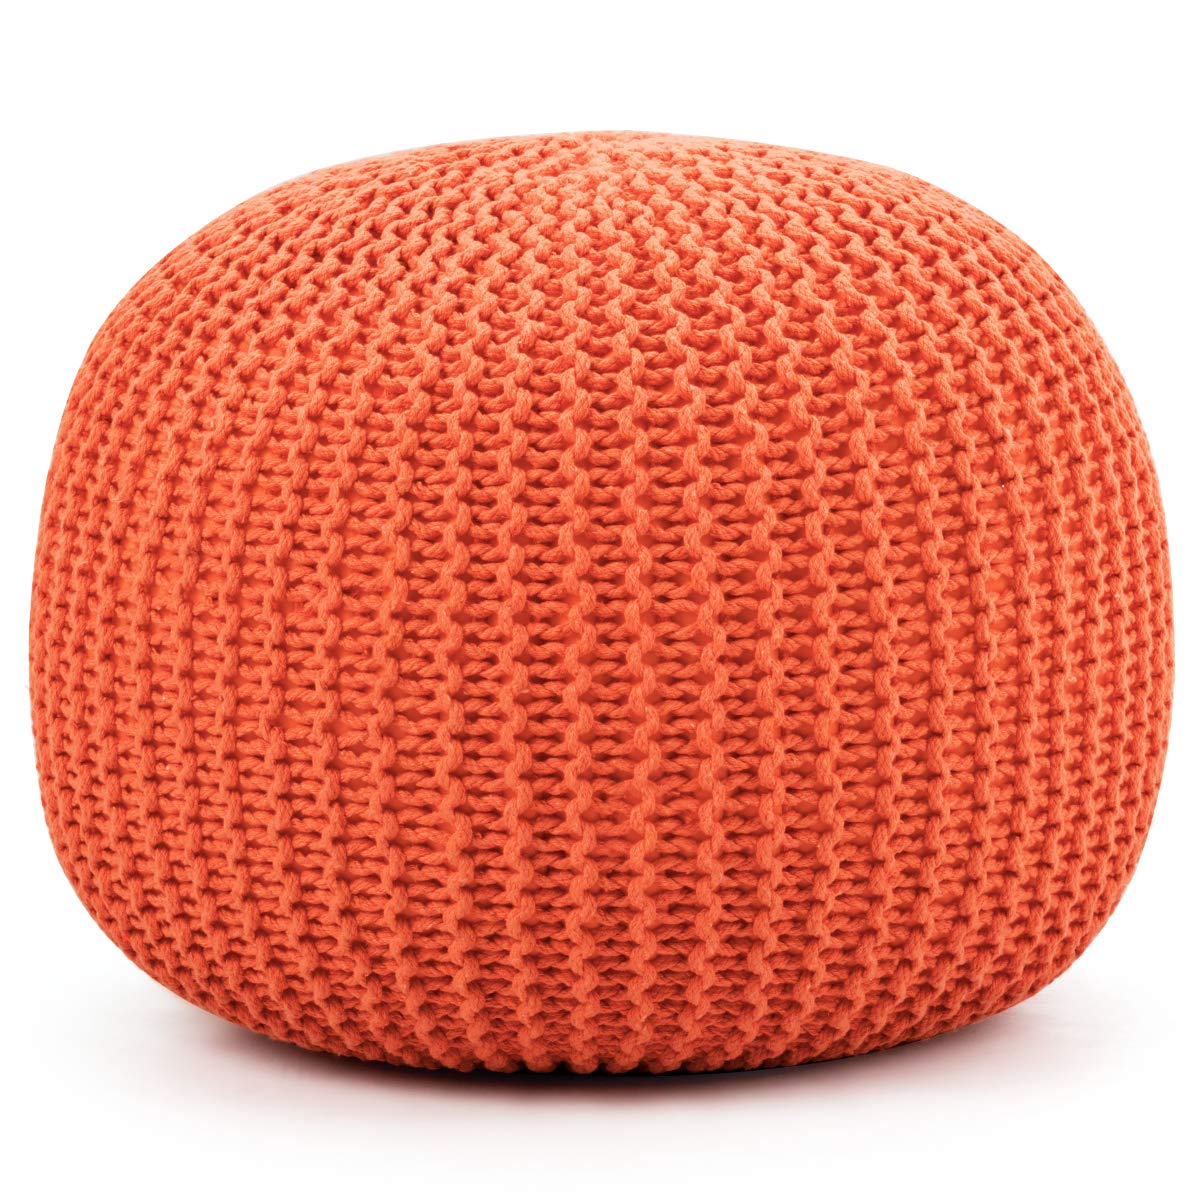 Giantex Pouf Round Knitted Hand Knitted Dori Cable W/Handmade Cotton Braid Cord, Home Decorative Seat for Guests, Ideal for Living Room, Bedroom, Kid's Room Floor Ottoman Footrest (Orange) by Giantex